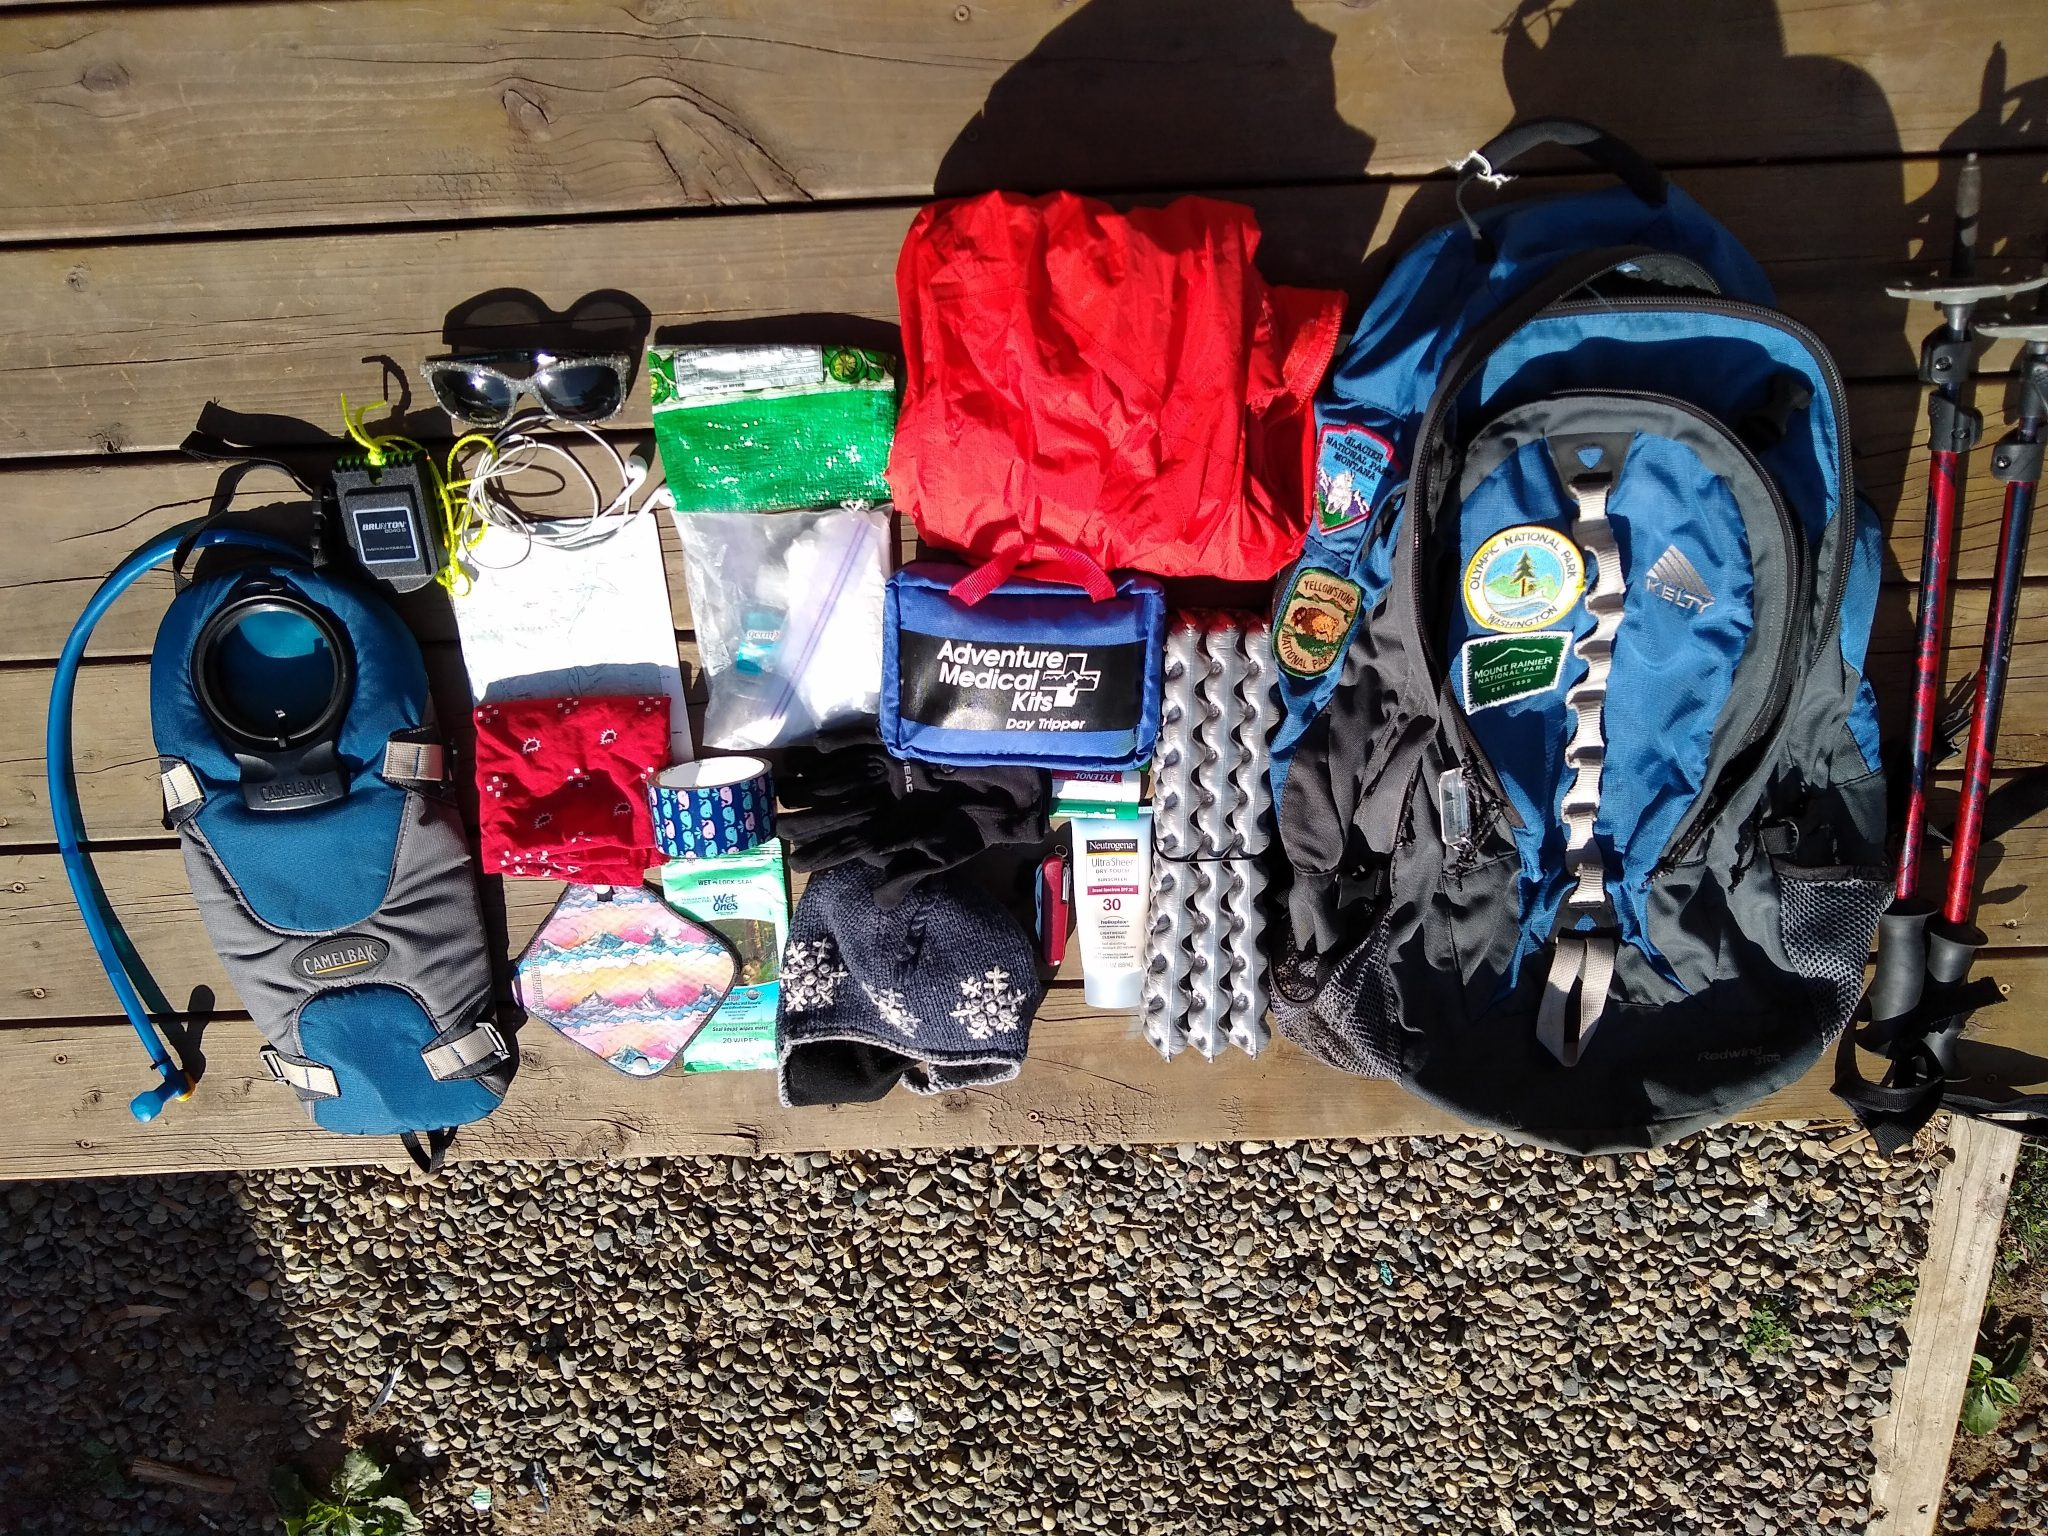 what I pack for a hike: A blue backpack and lots of day hiking gear, including trekking poles, a red rainjacket, a first aid kit, a sit pad, head net, water bladder, sunglases and a map